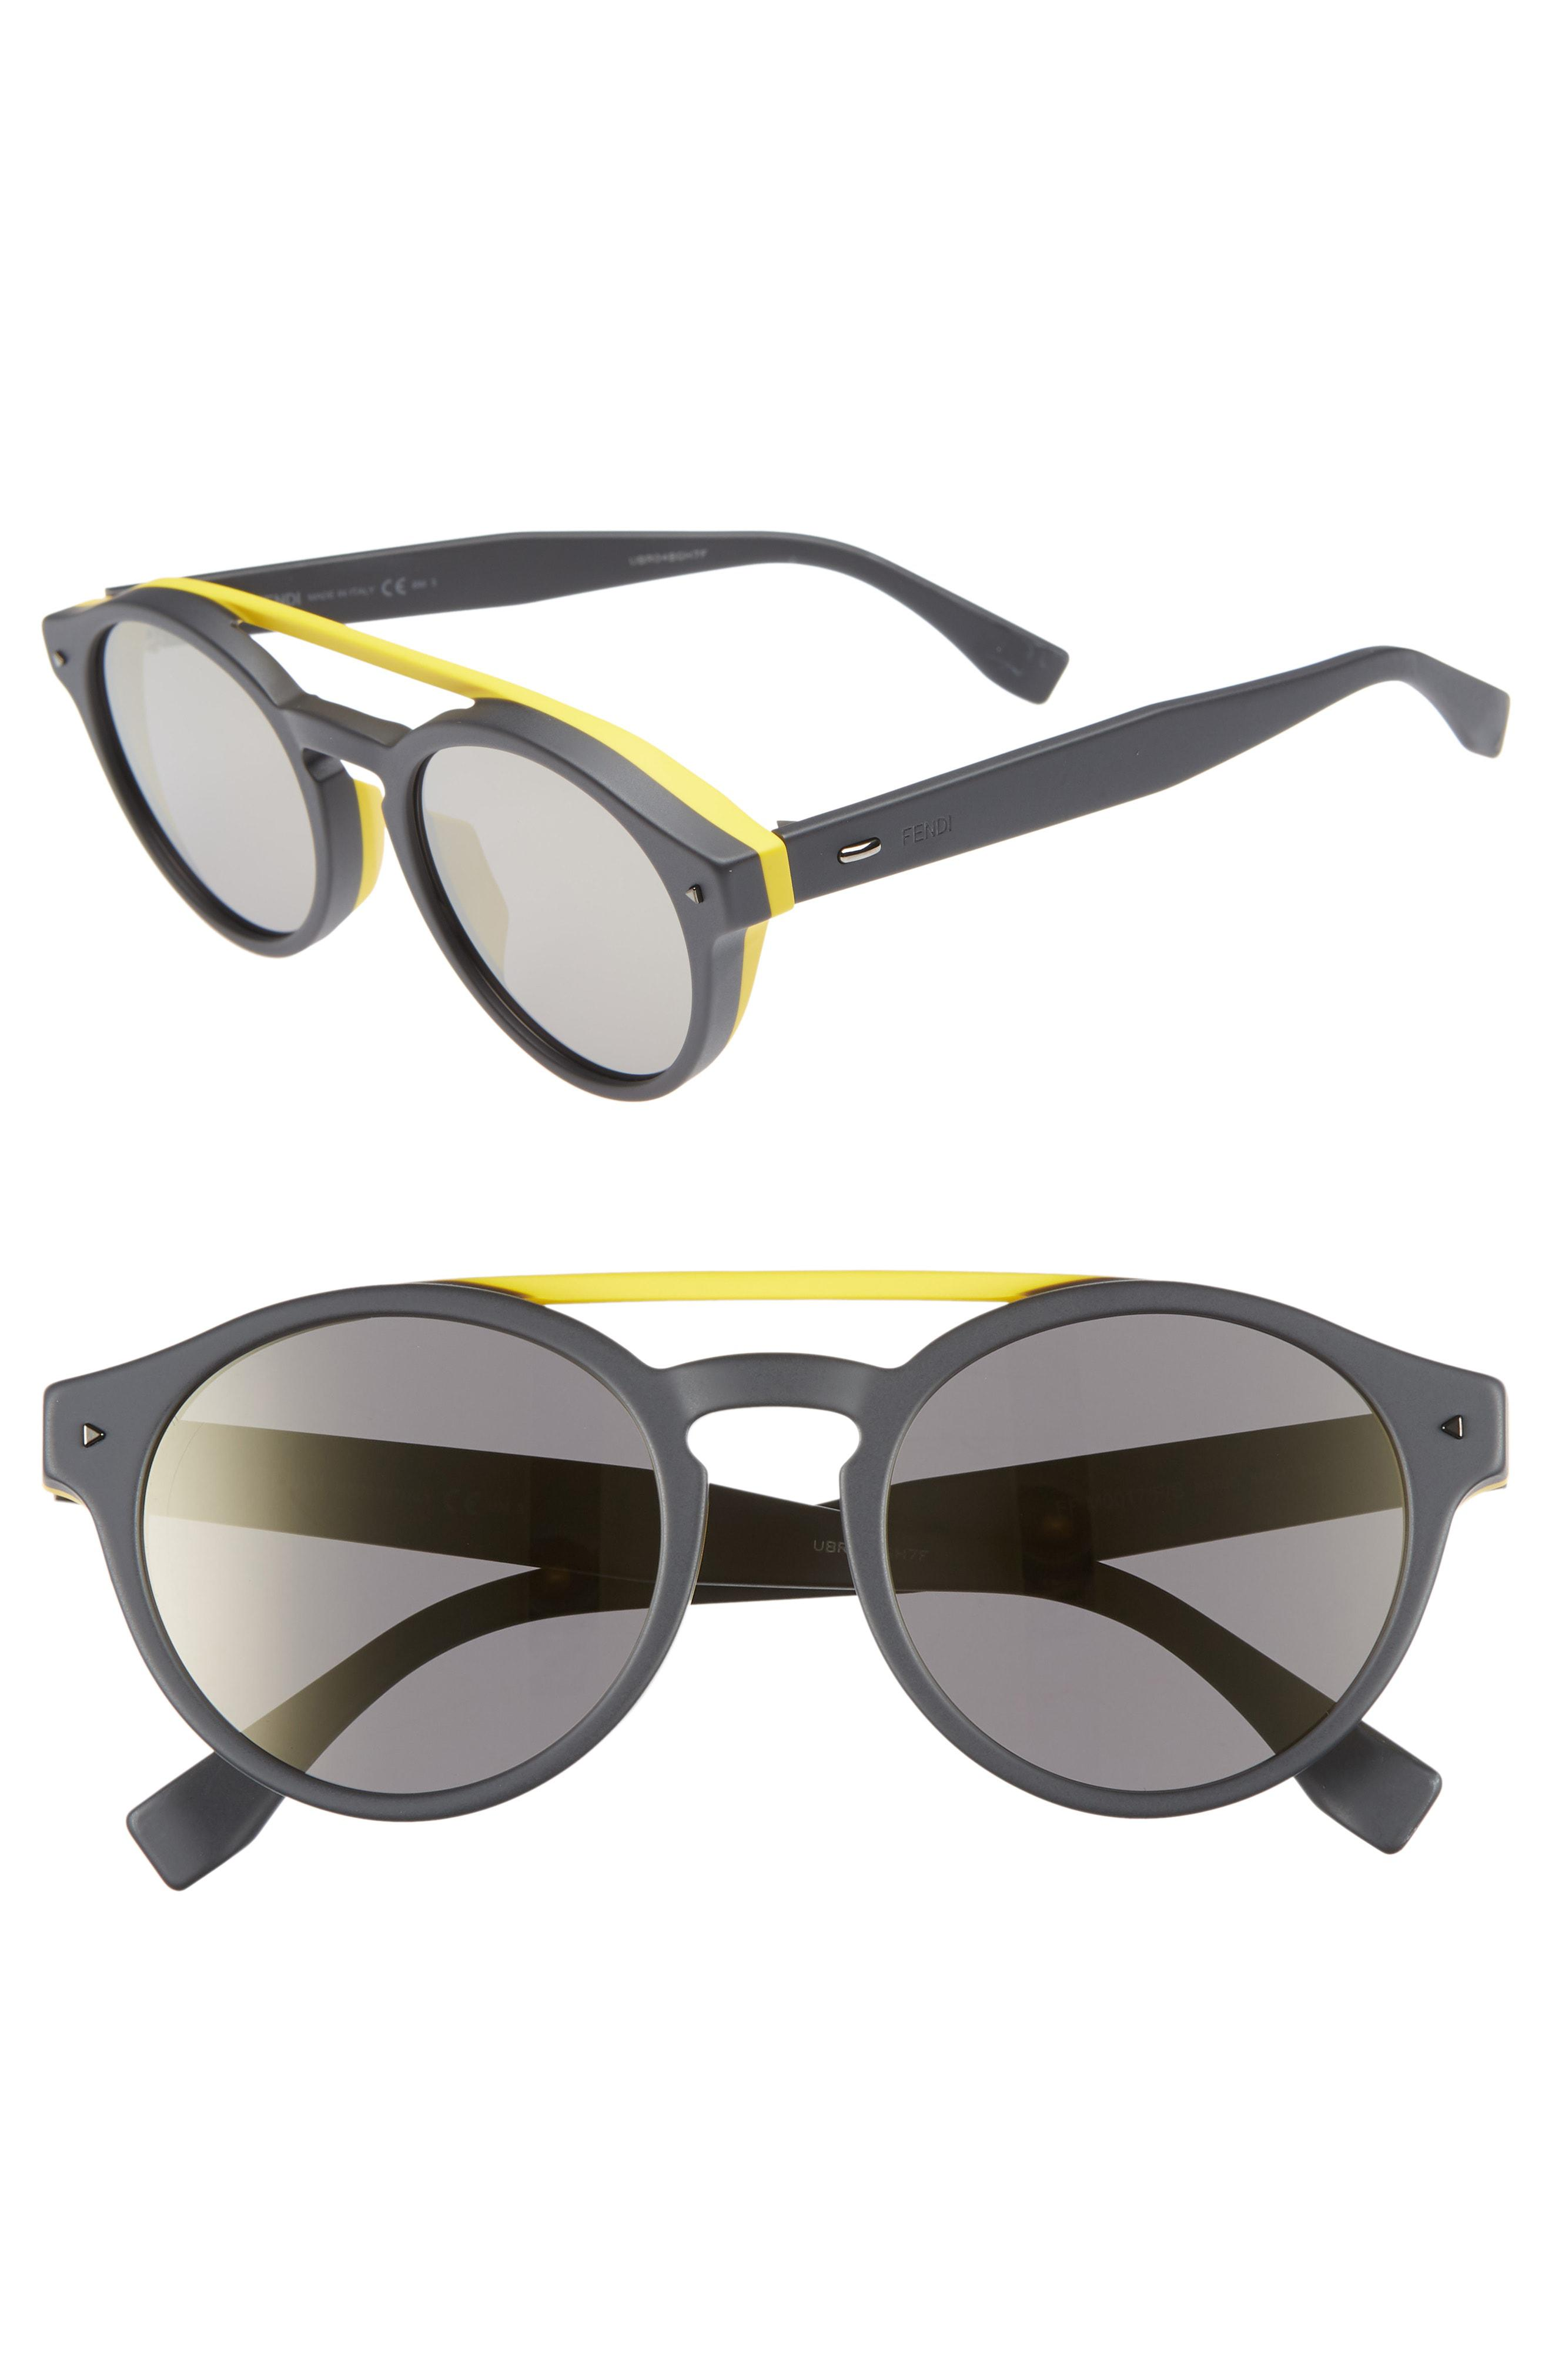 625653619eda Fendi - Gray 53mm Special Fit Round Sunglasses for Men - Lyst. View  fullscreen